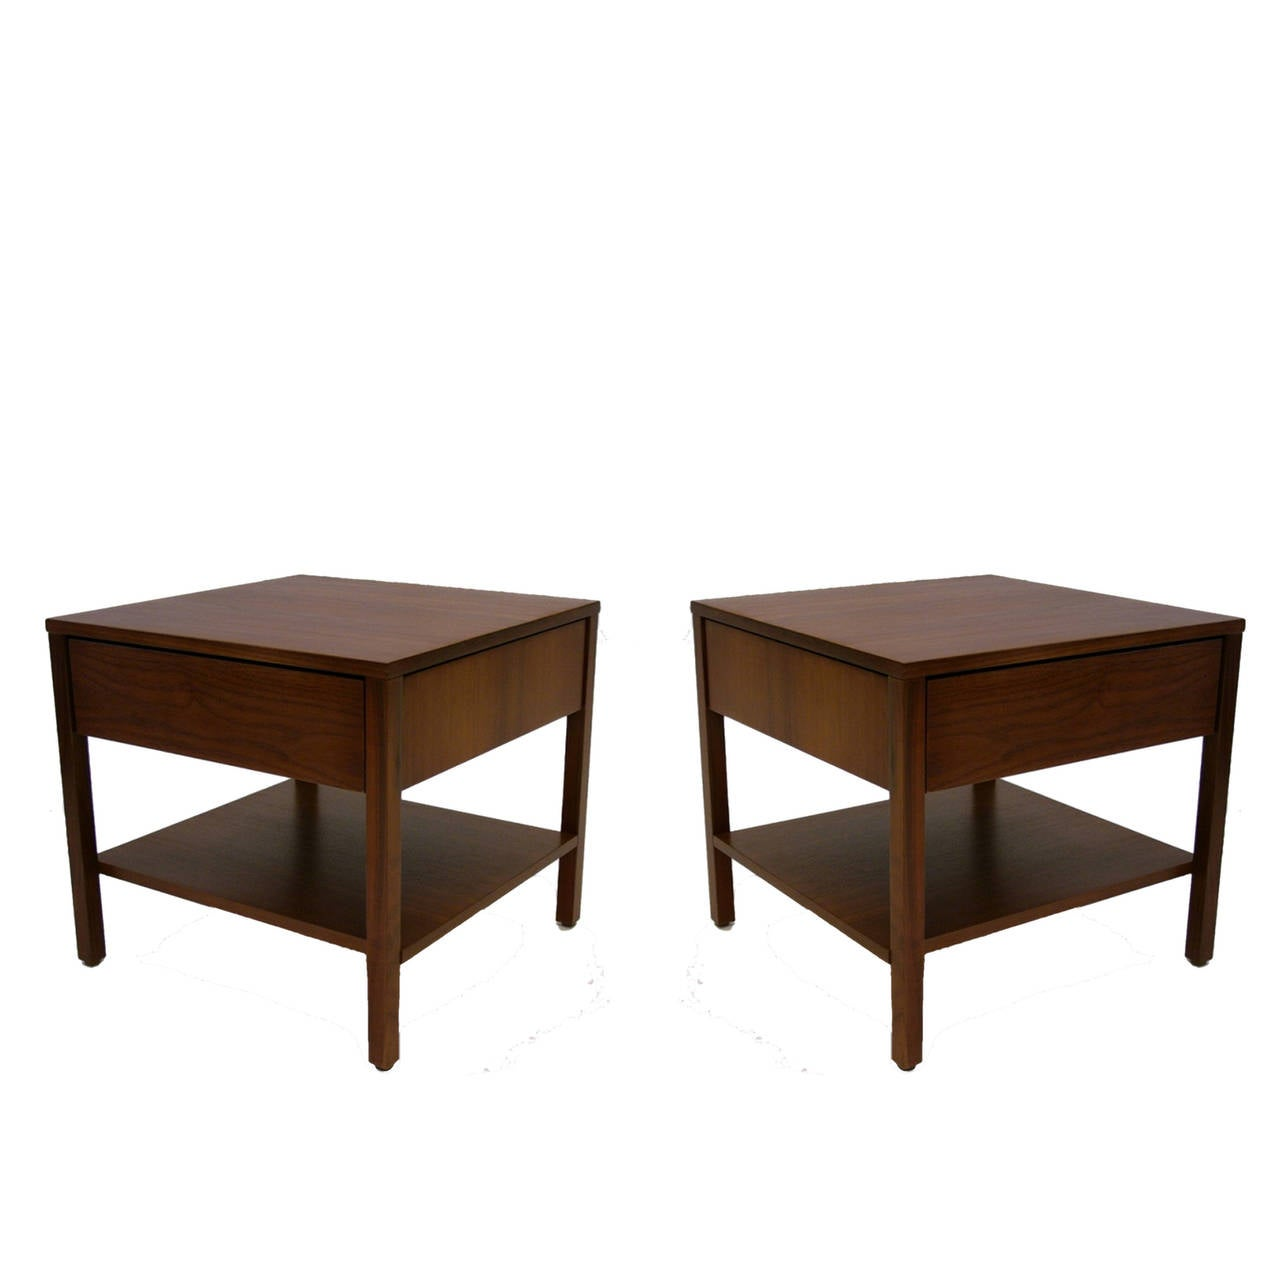 pair of danish rosewood wall mounted single drawer bedside tables